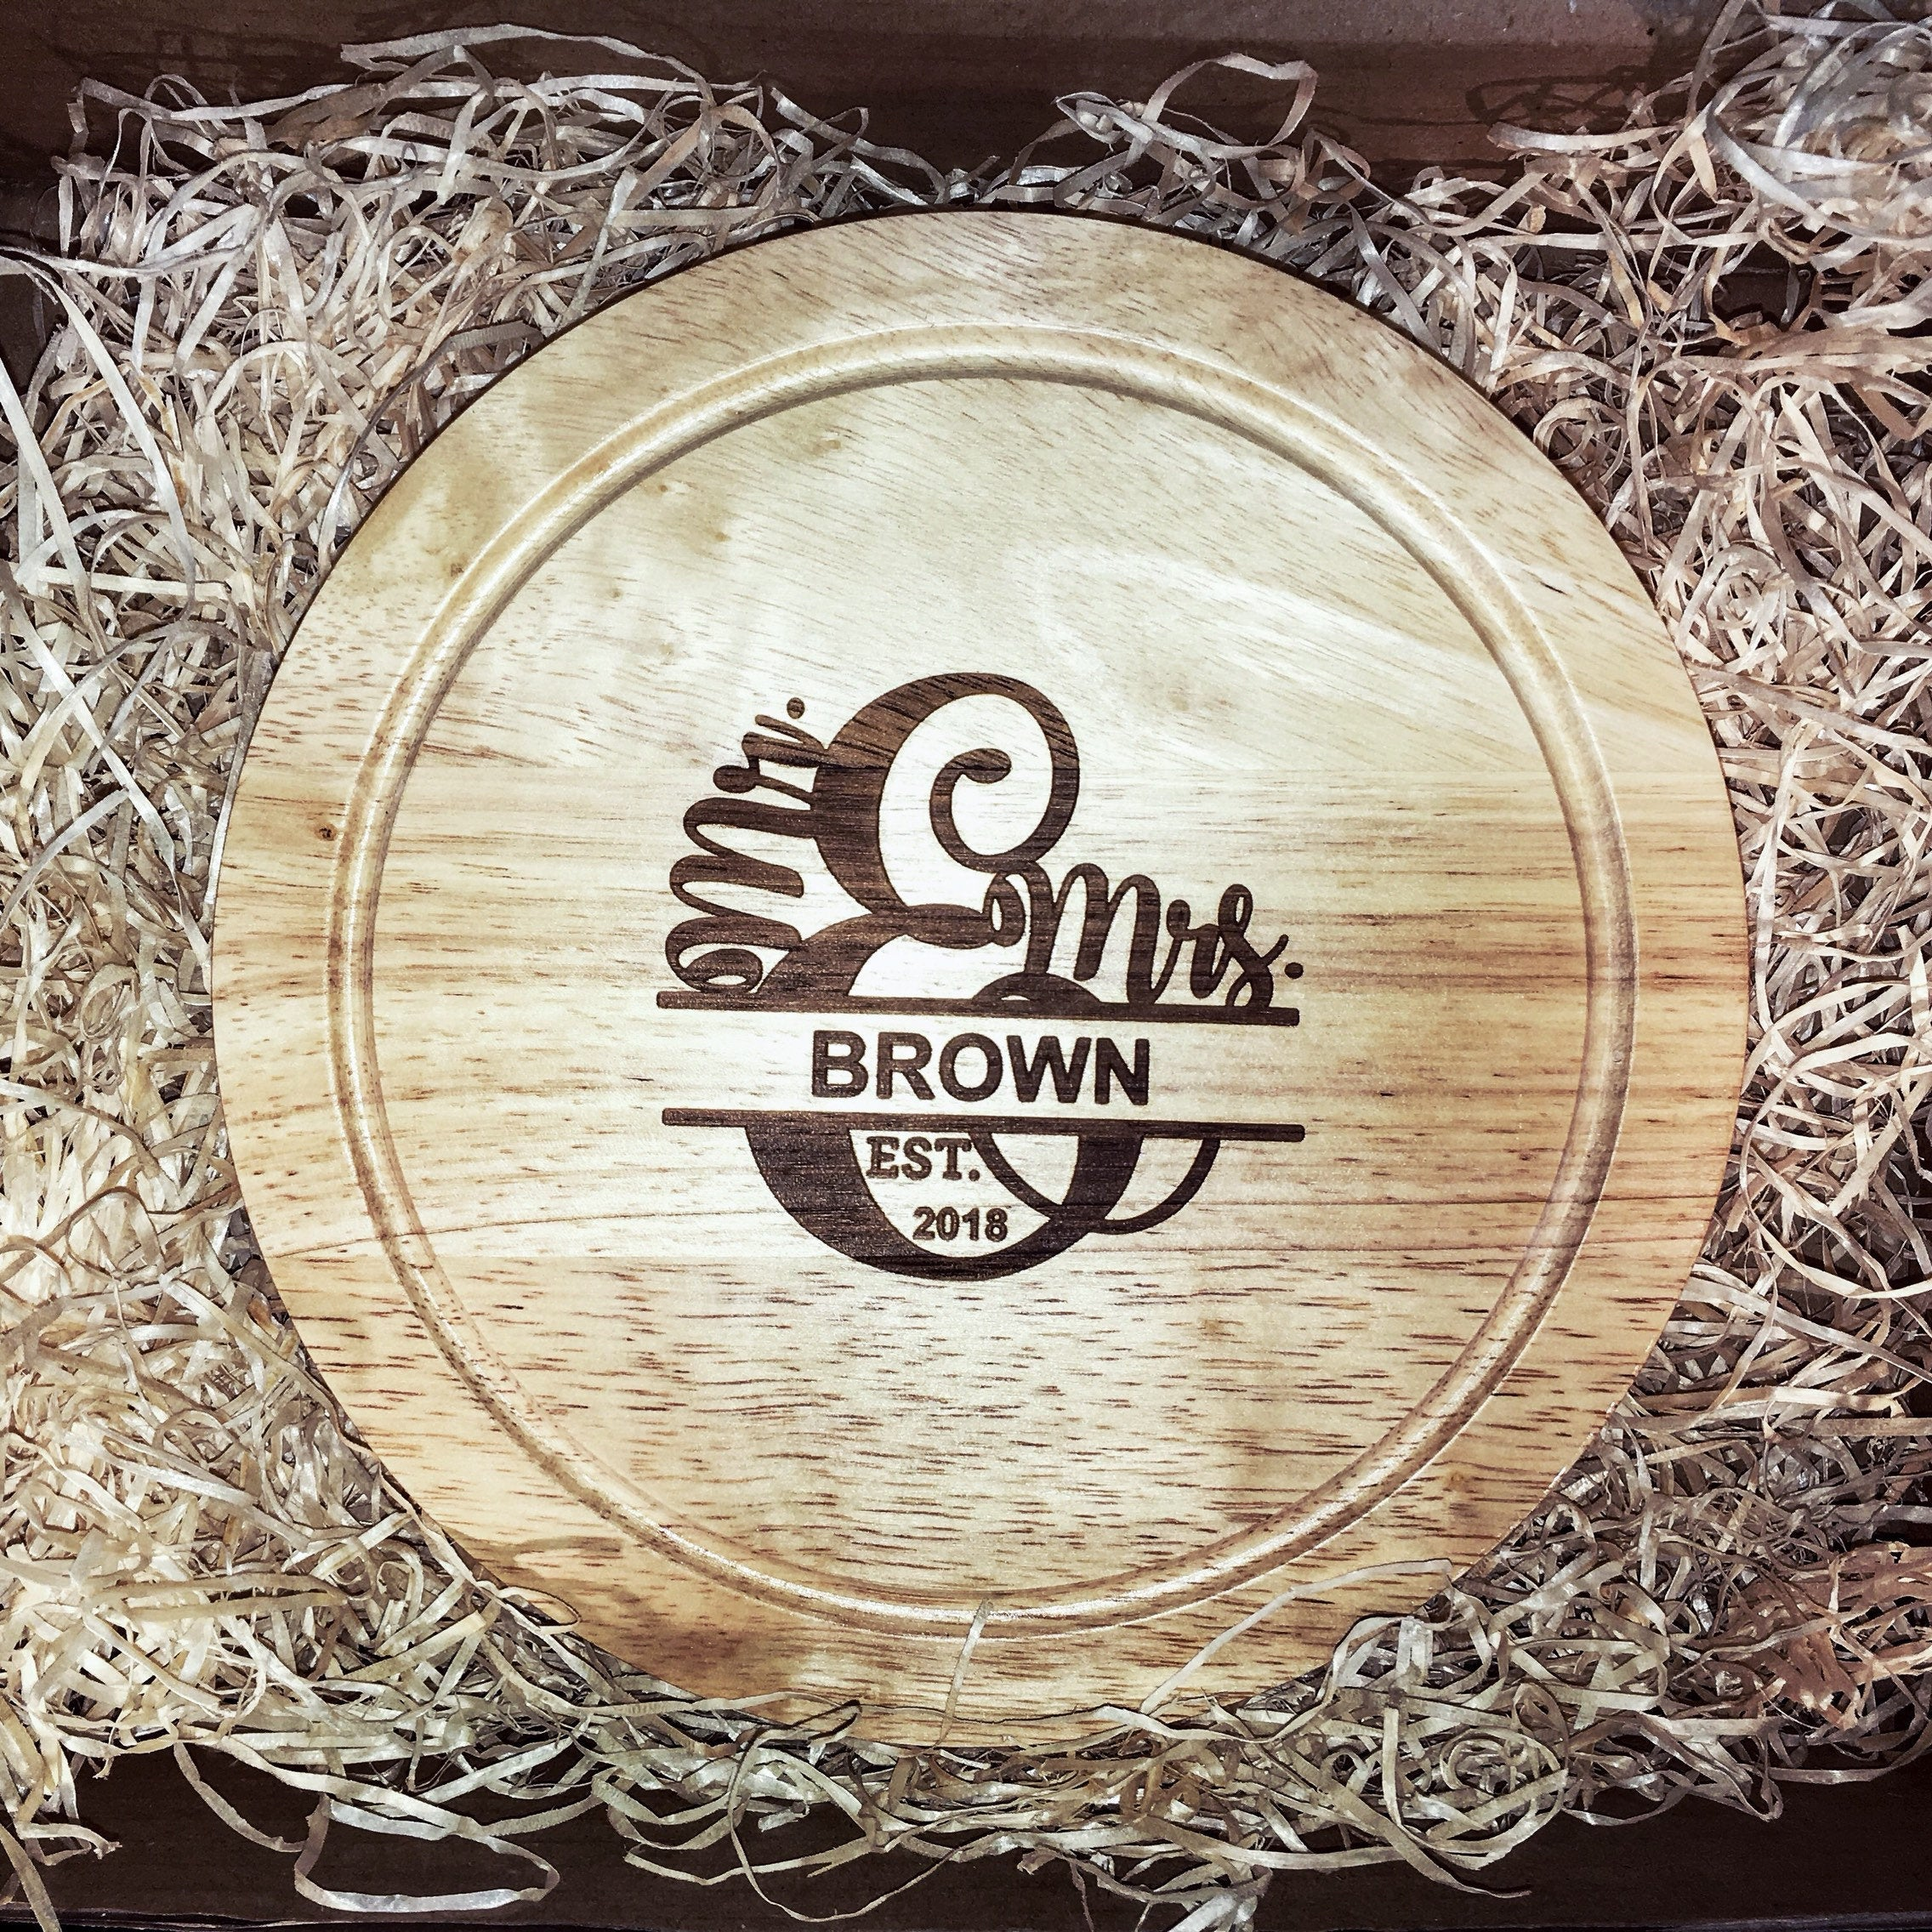 Personalised round wooden cheese board set - Split monogram Mr & Mrs